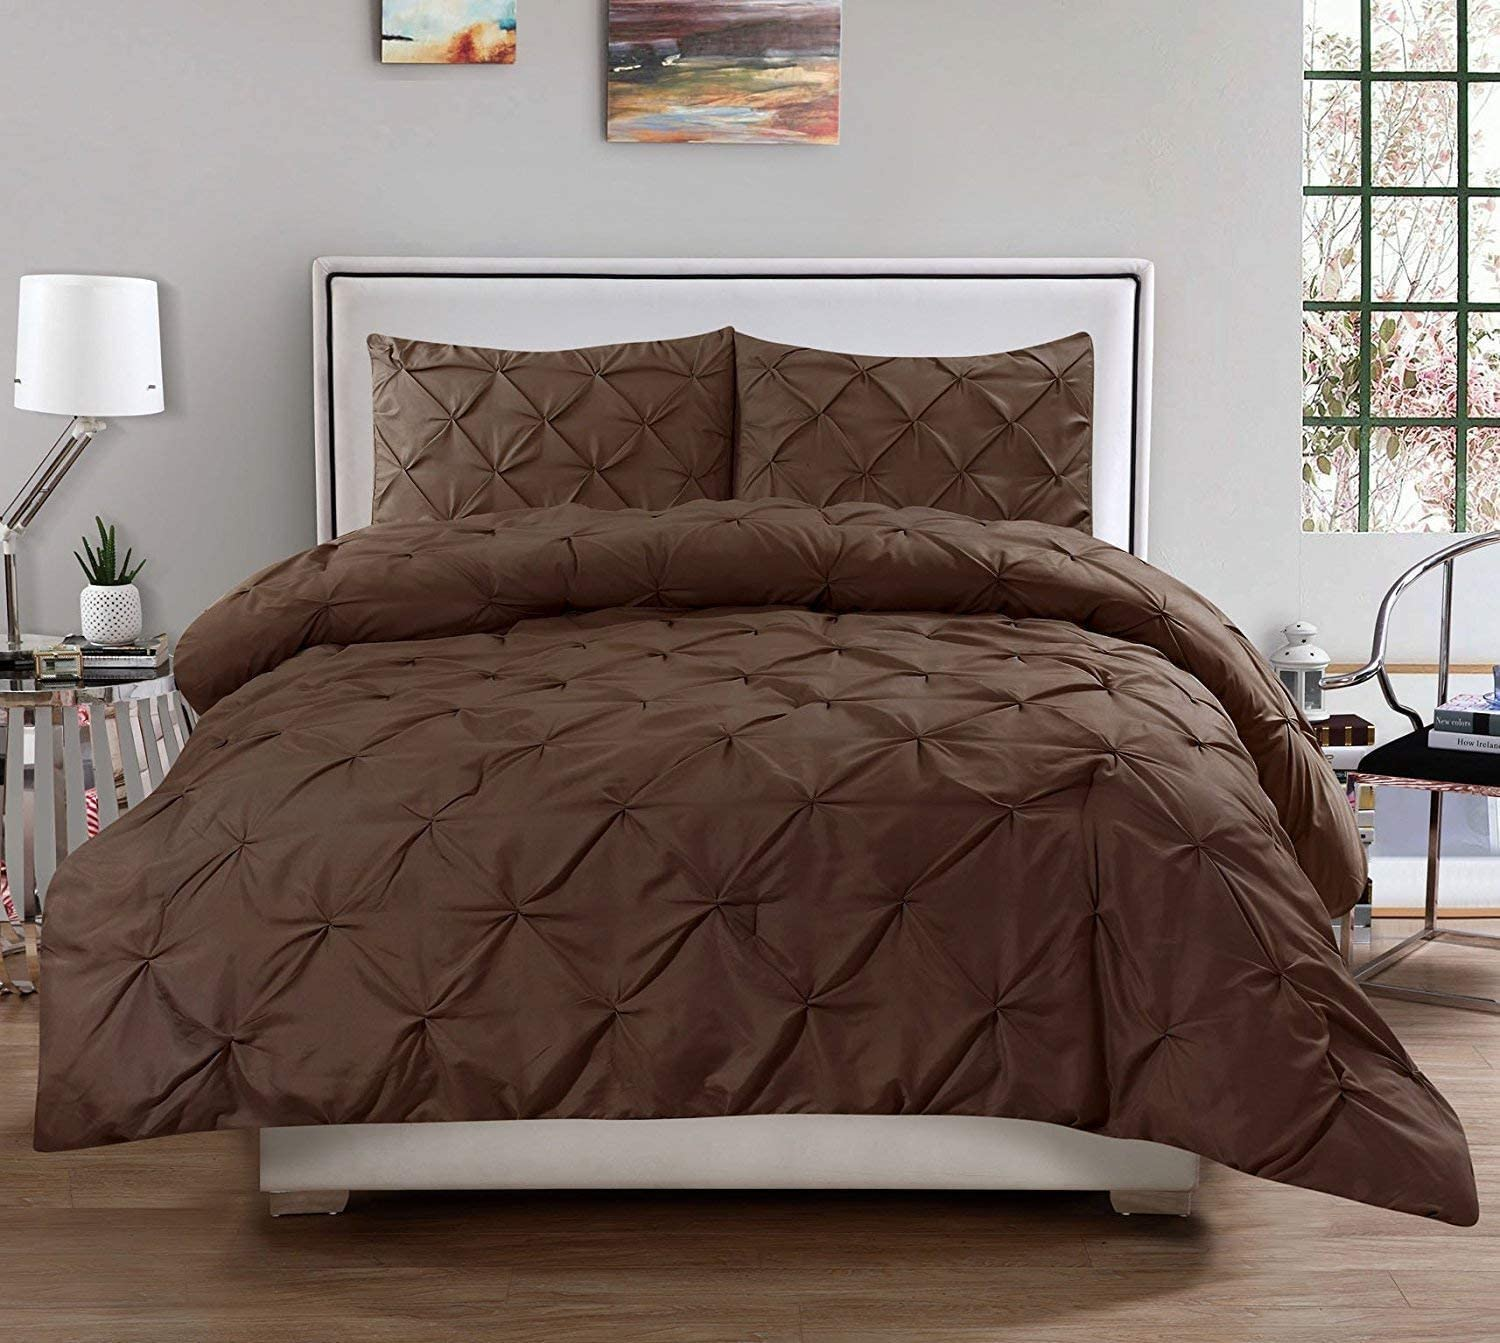 Pinch Pleated Duvet Cover Queen (B) 90'' x 90'' Size 3pc Duvet Cover Set with Zipper Closure & Corner Ties, Pintuck Decorative (100% Natural Cotton) 920 Thread Count - Brown Solid